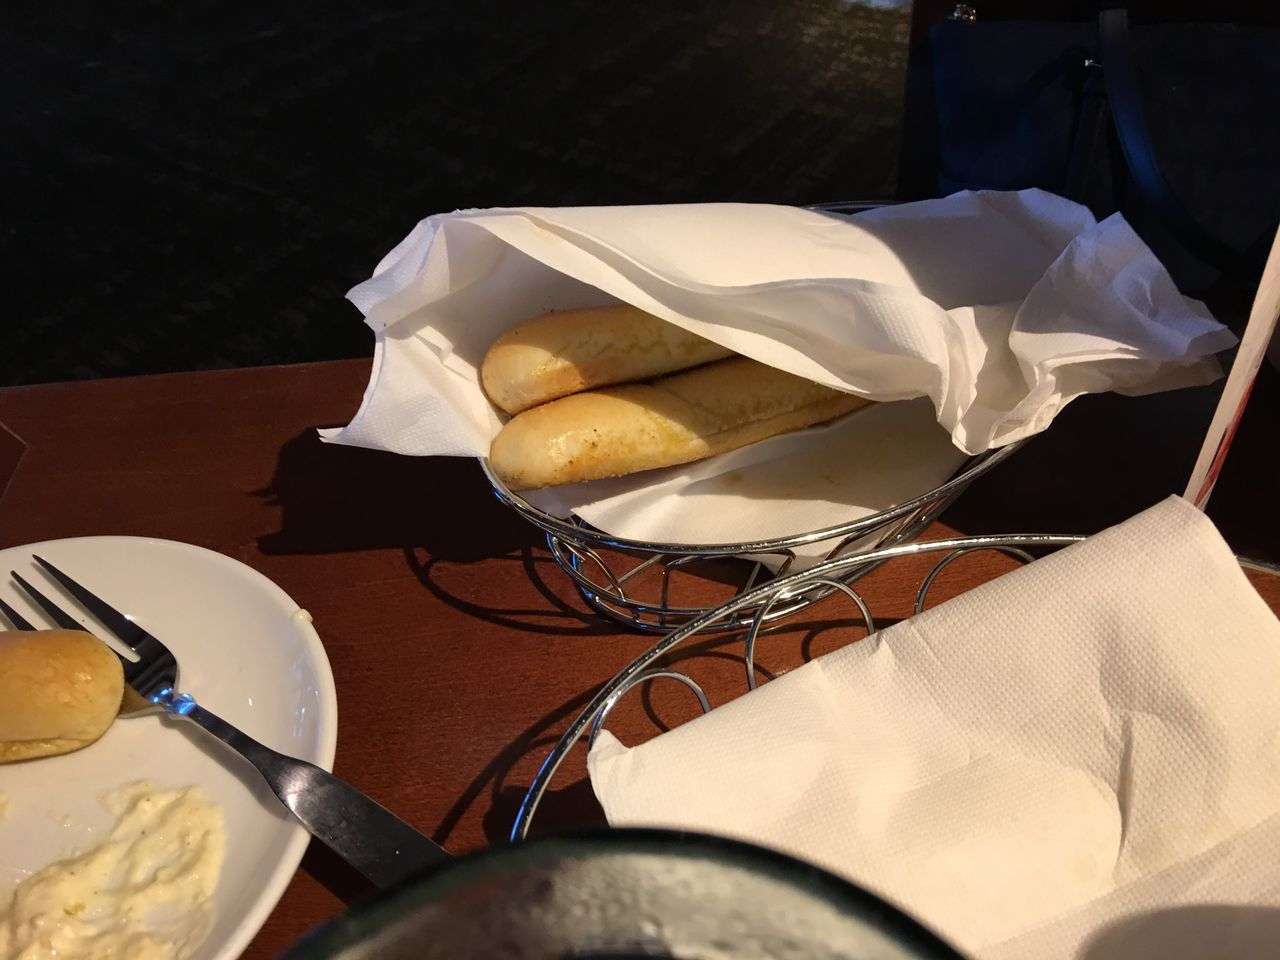 Last 2 breadsticks...... Food Bread Lunch Restaurant Table Olive Garden Freshness High Angle View Food And Drink Plate Ready-to-eat Day Indoors